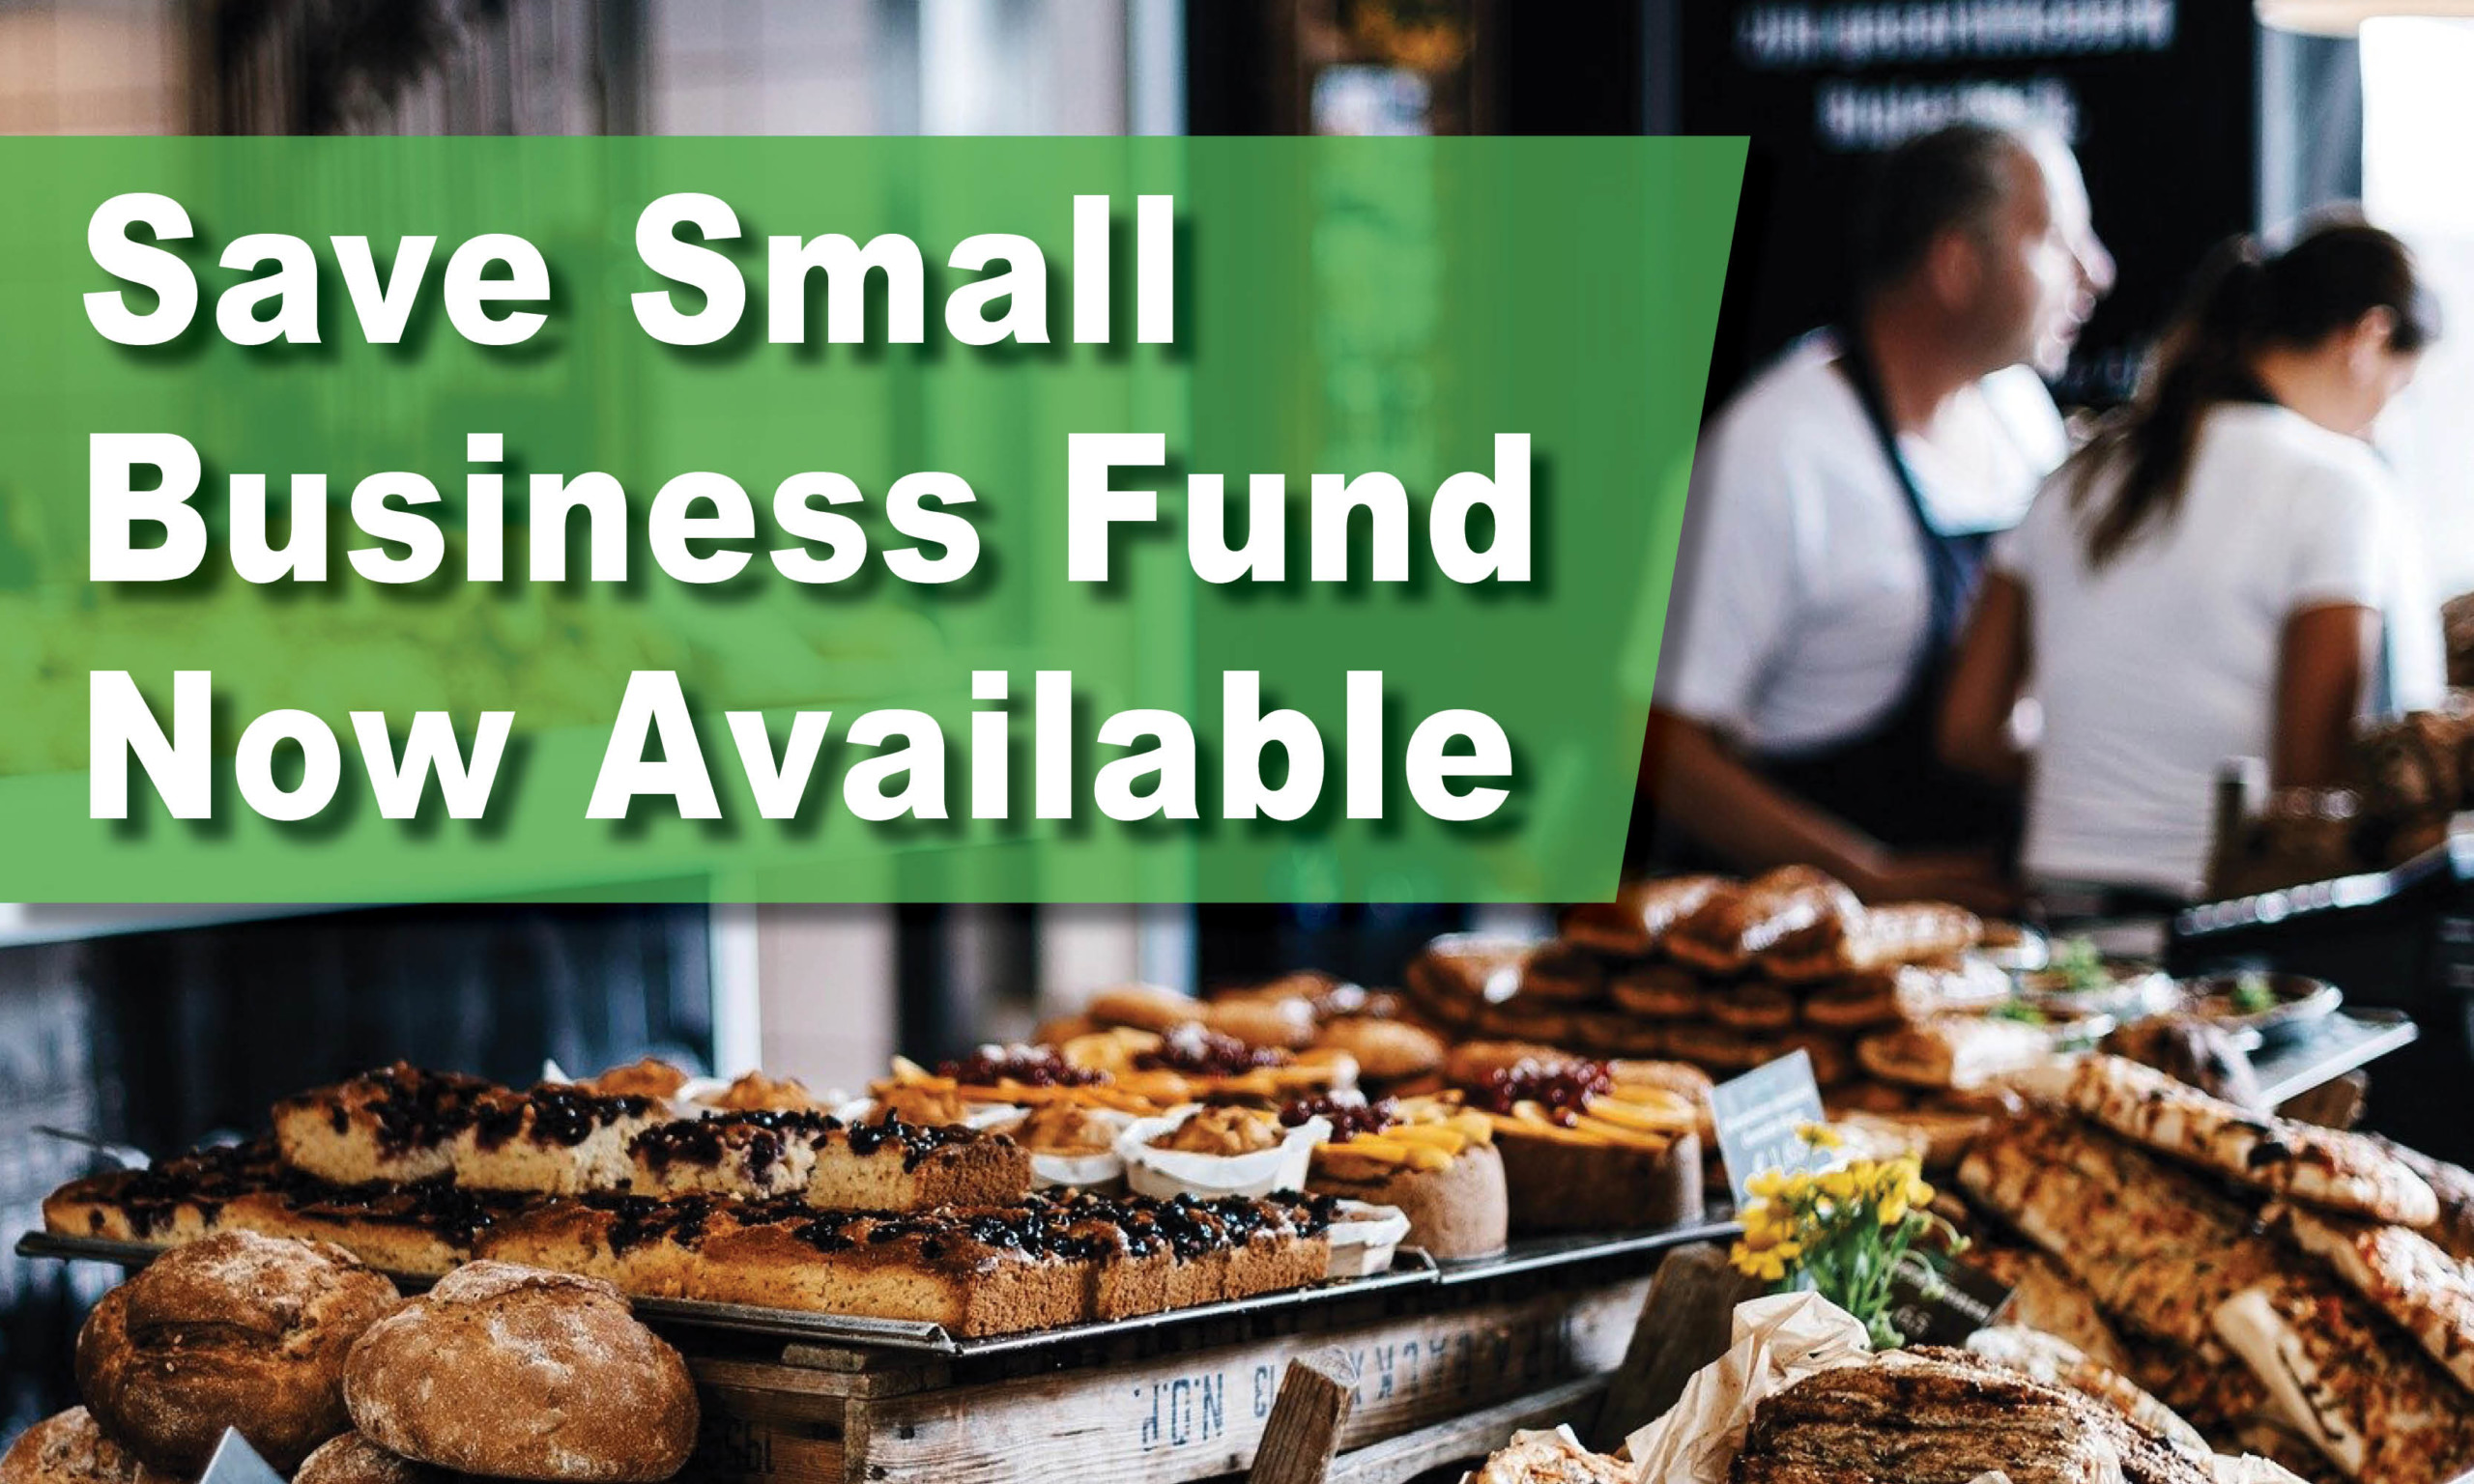 Save Small Business Fund Now Available